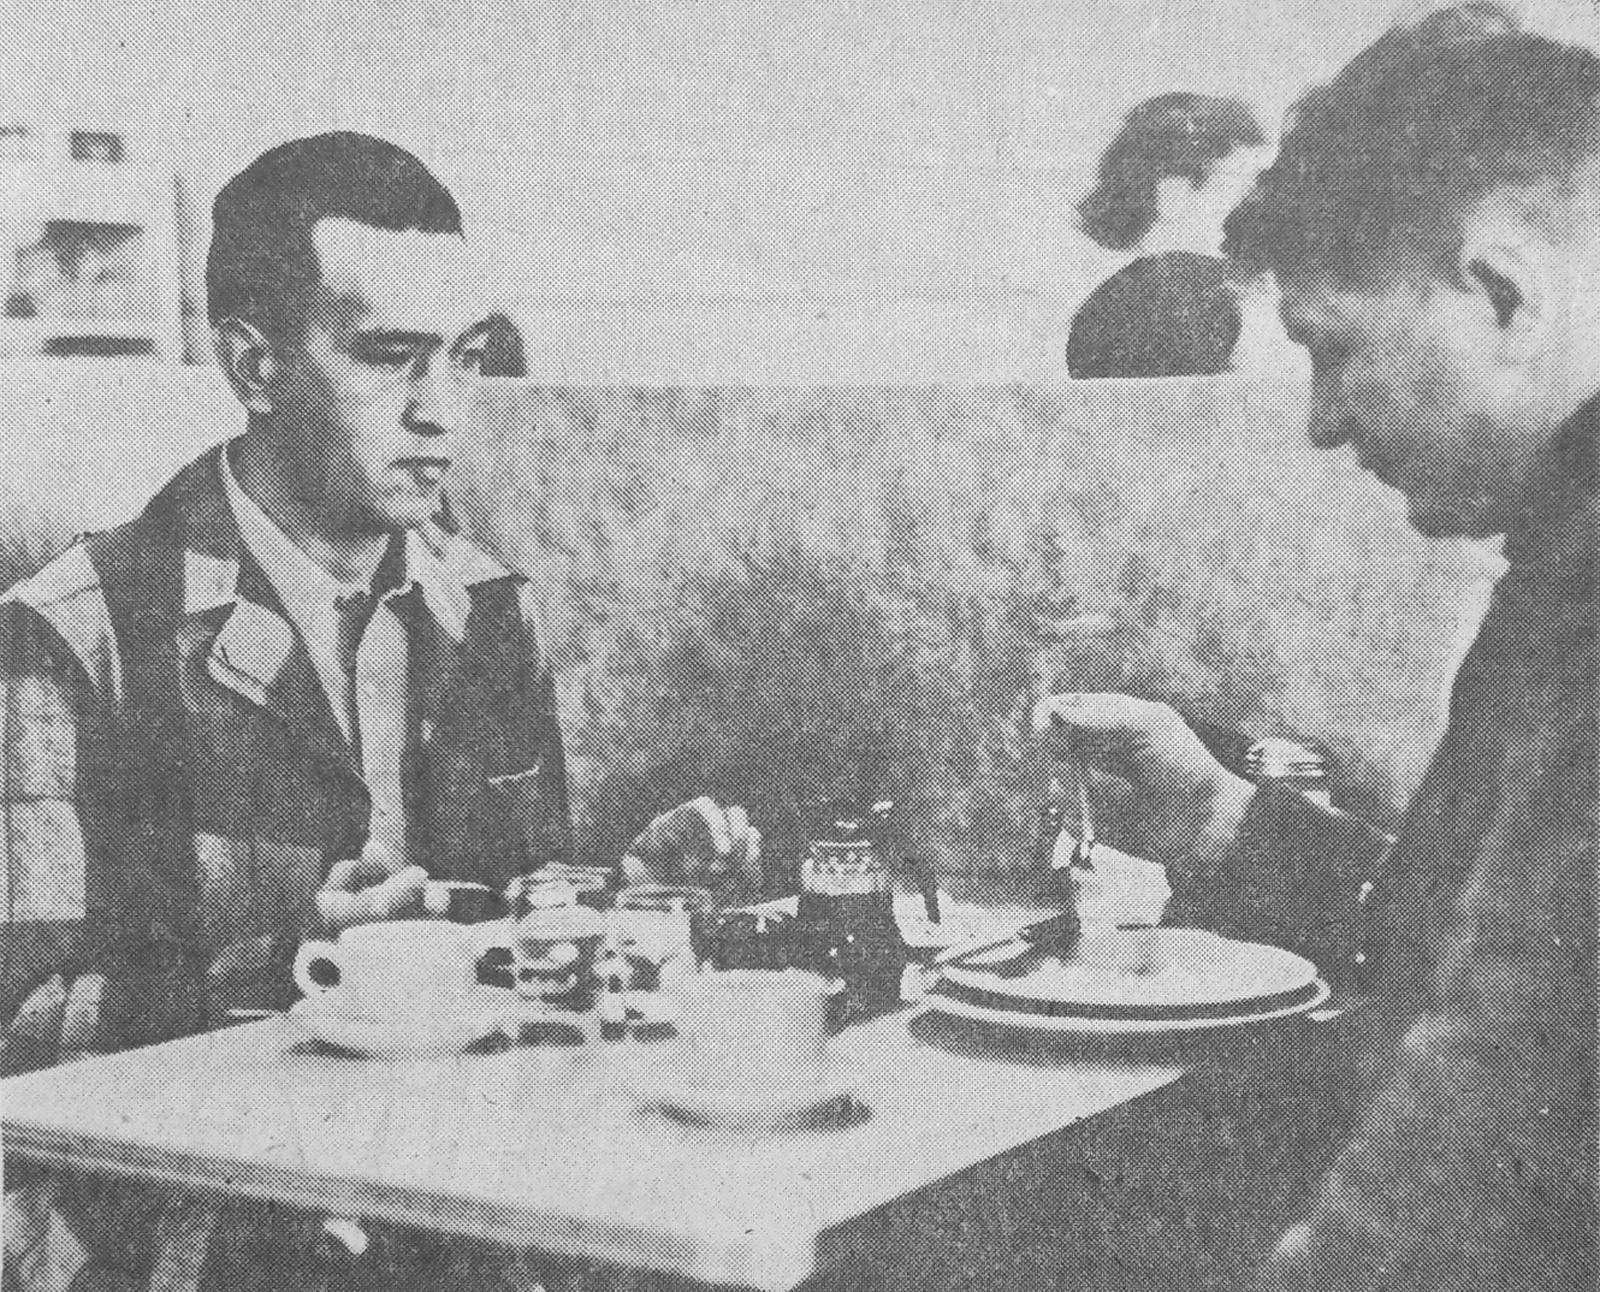 """James Q. Anderson, left, one of Klamath County's most notorious criminals in the 1950s, is seen eating breakfast with Sheriff Murray """"Red"""" Britton in this 1955 newspaper photo. (Klamath County Museum)"""